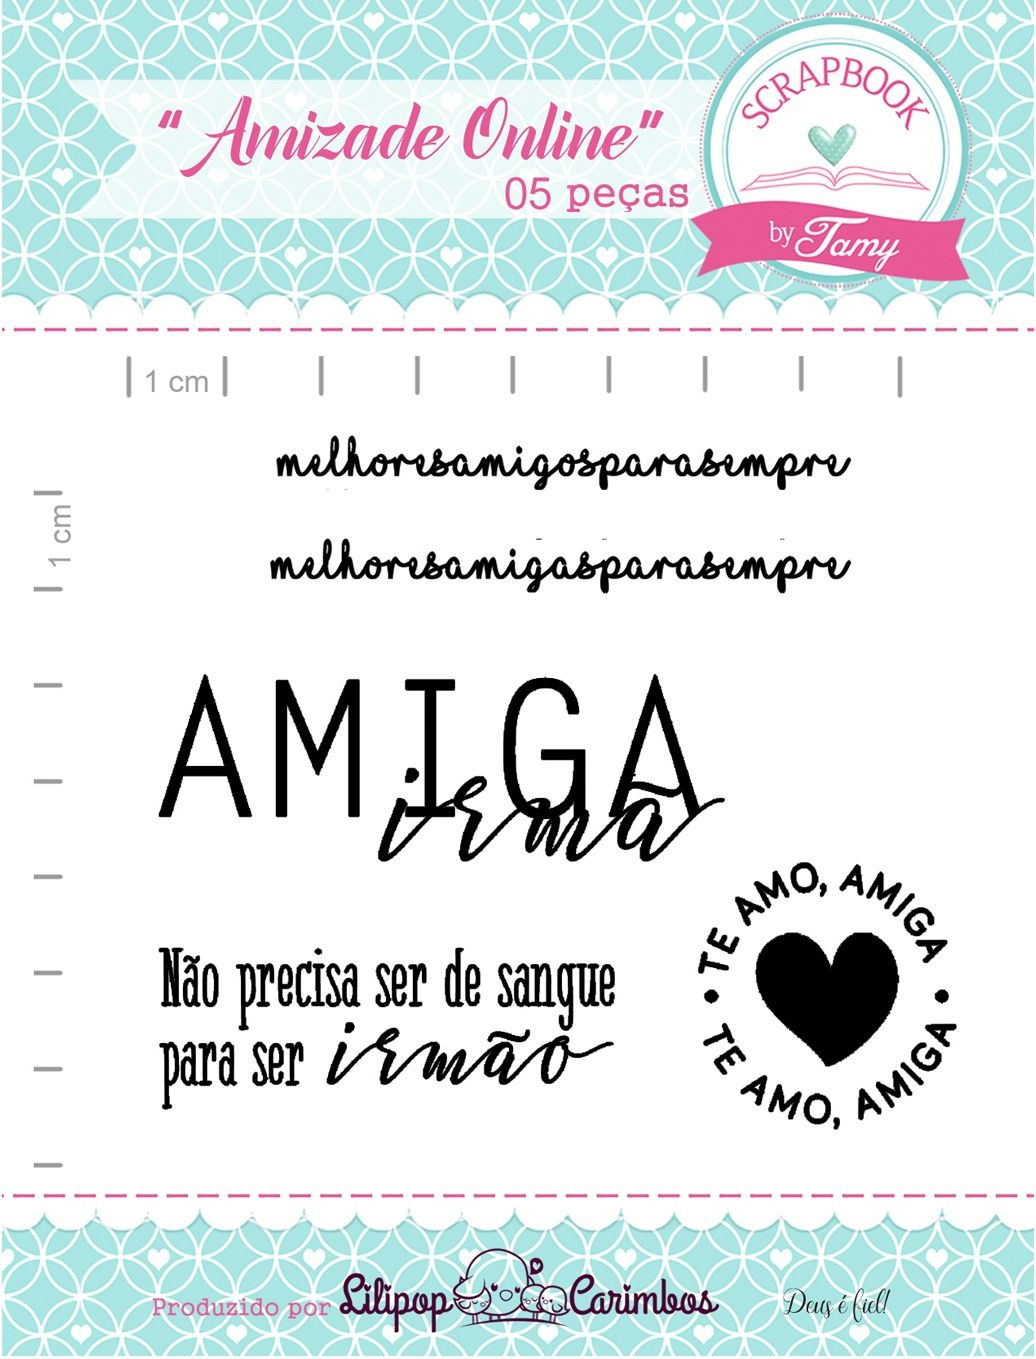 Kit de Carimbos - Amizade Online - Scrapbook by Tamy